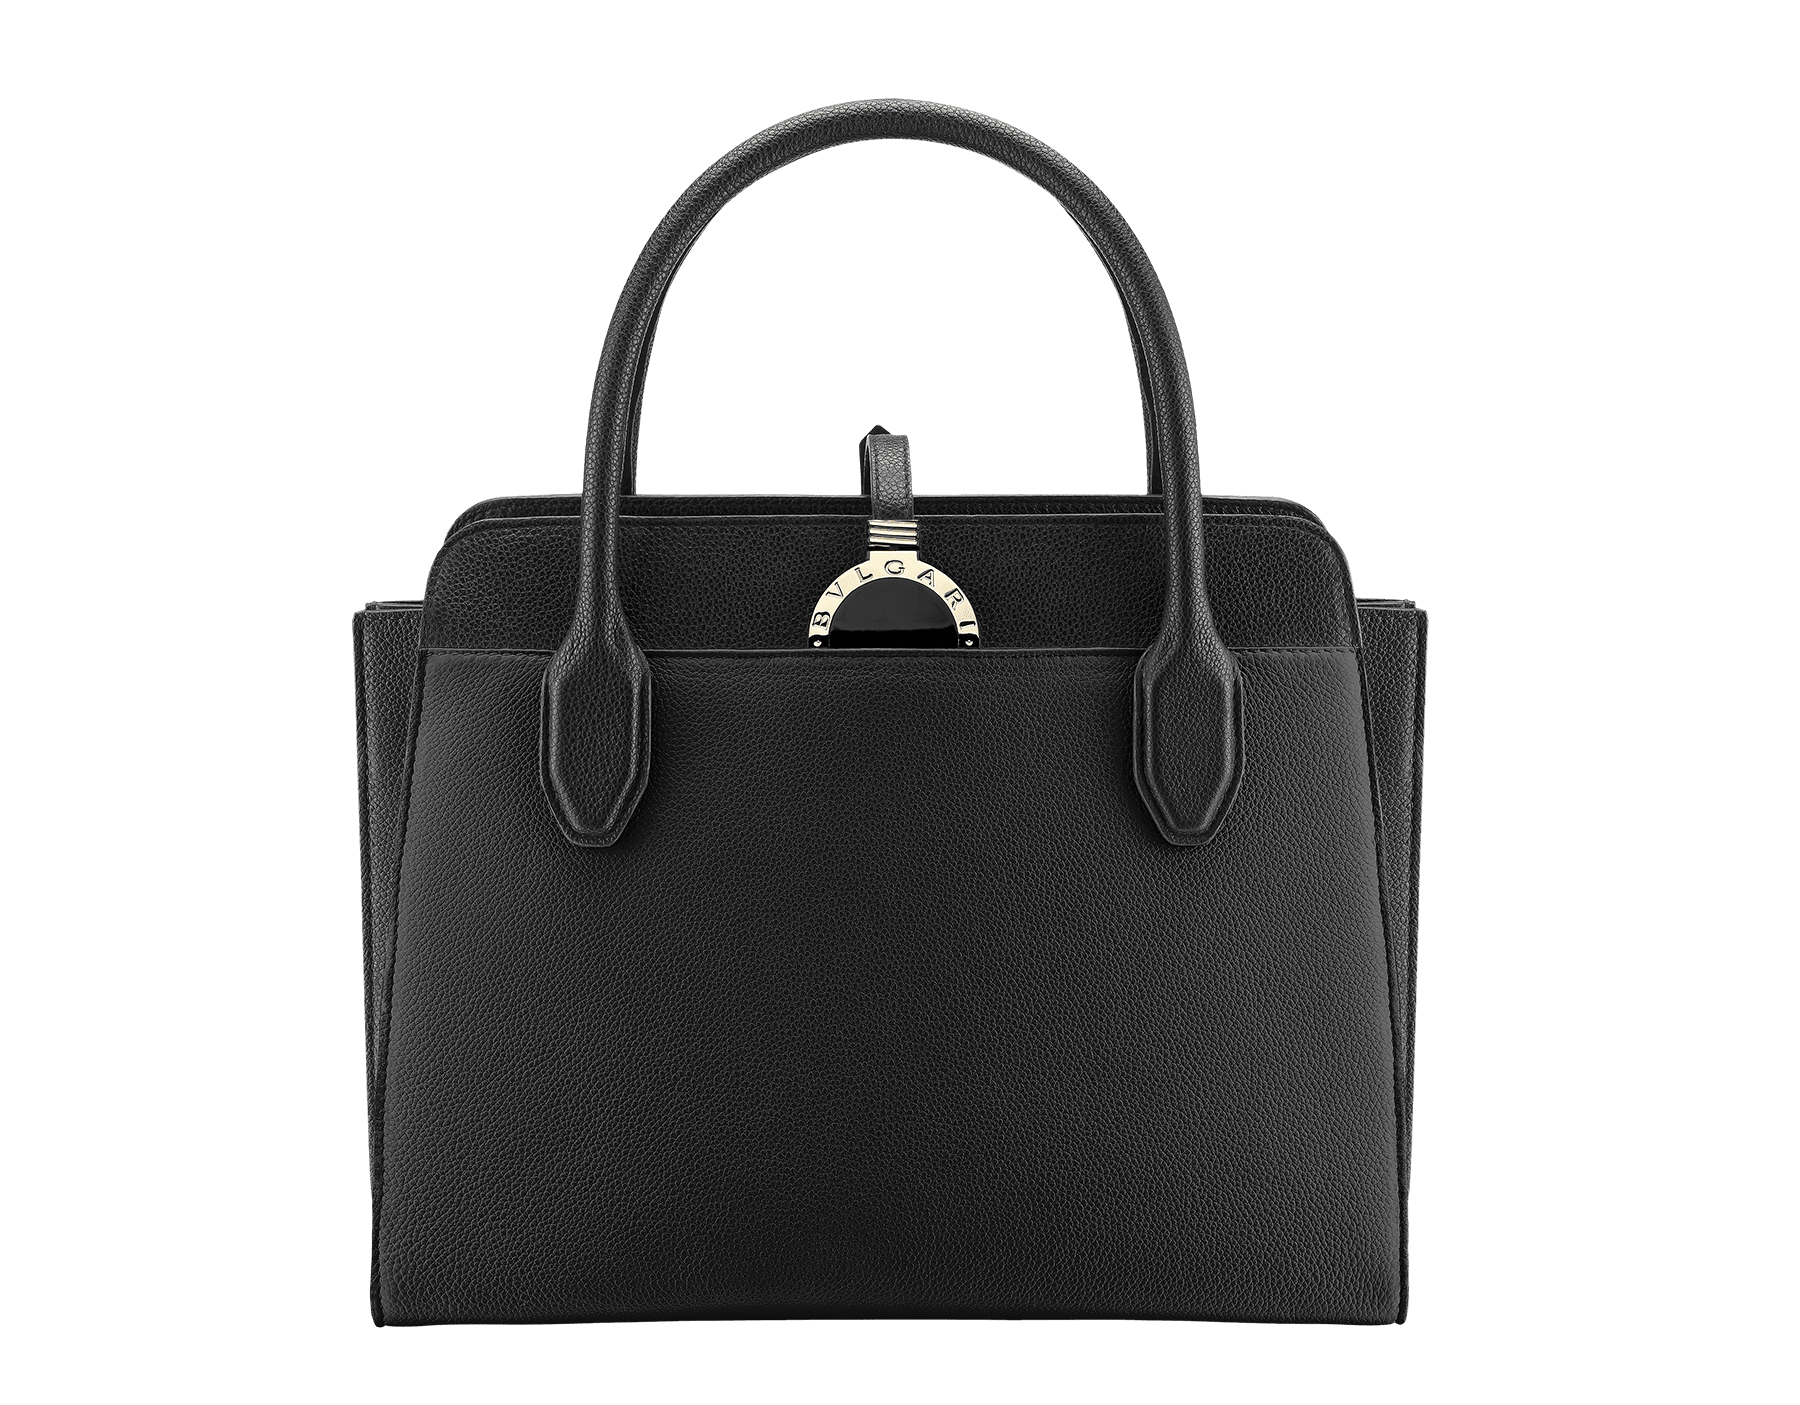 Tote bag Bulgari-Bulgari Alba in black grain calf leather with zip closure. Pendant motif in brass light gold plated metal featuring the iconic double logo and Tubogas motif. 282591 image 1